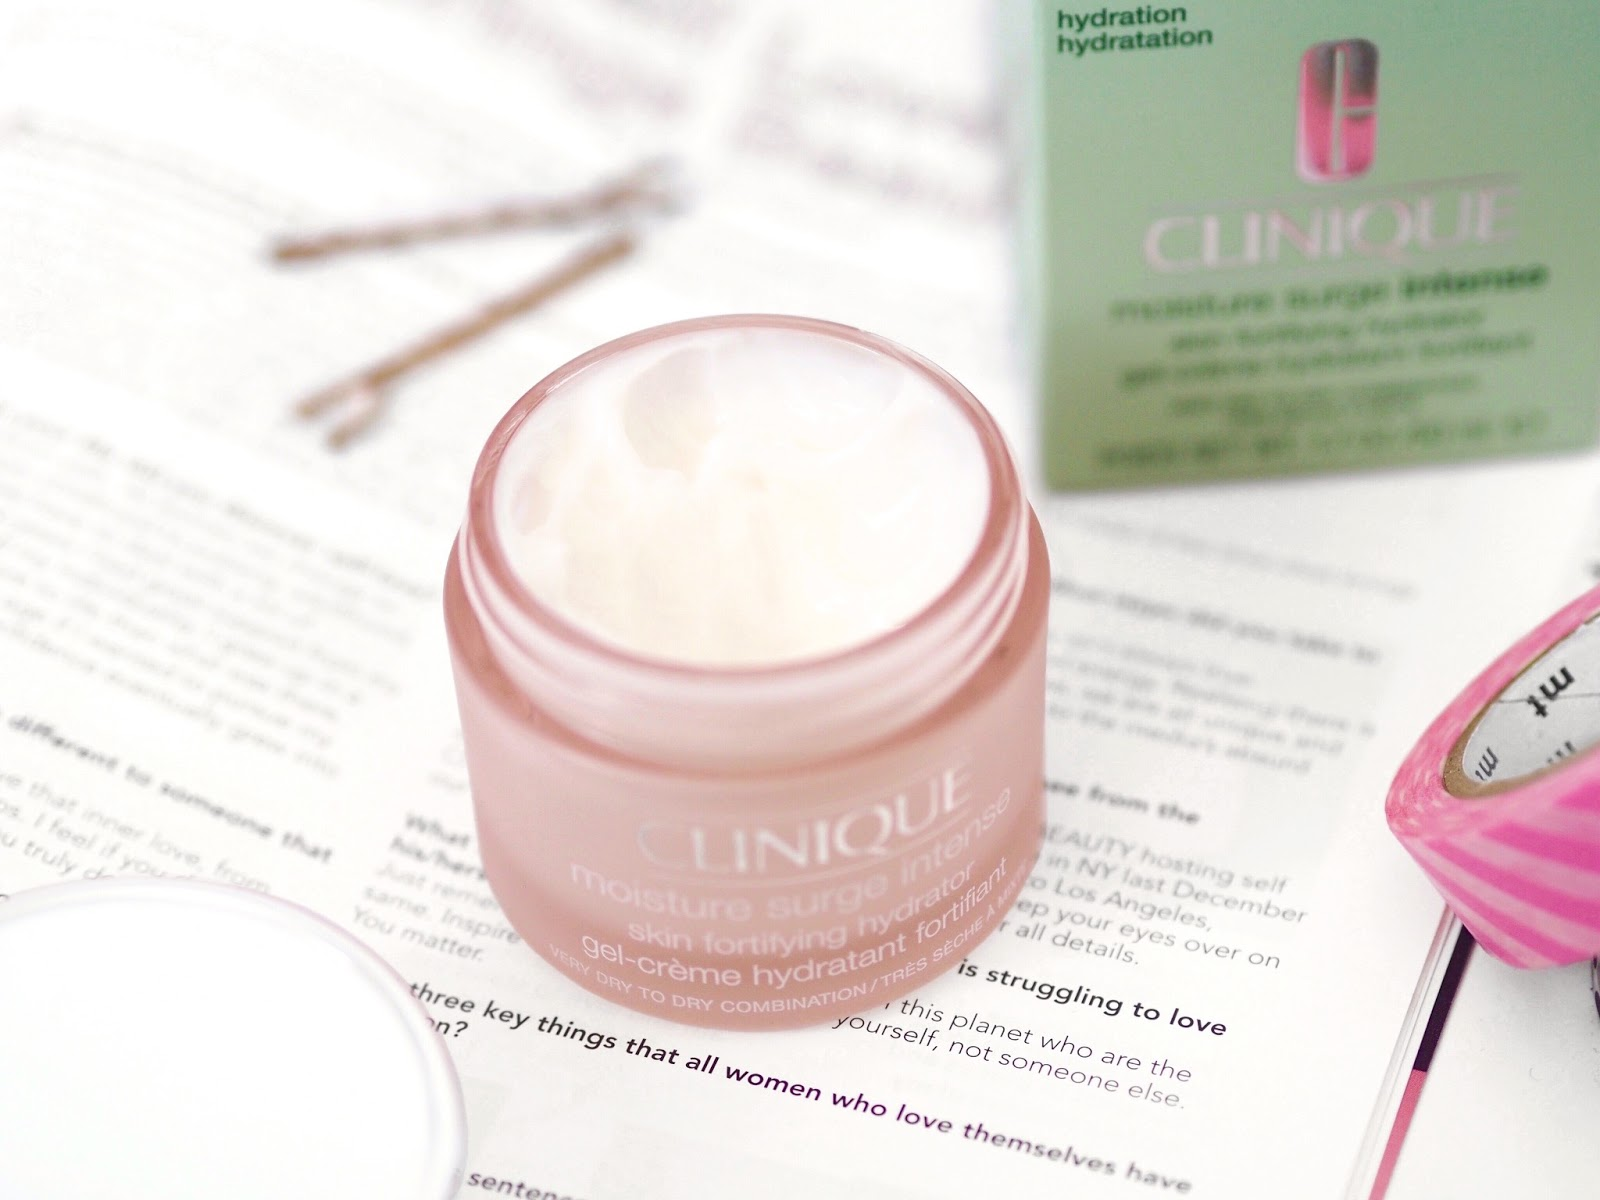 Clinique Moisture Surge Intense Review